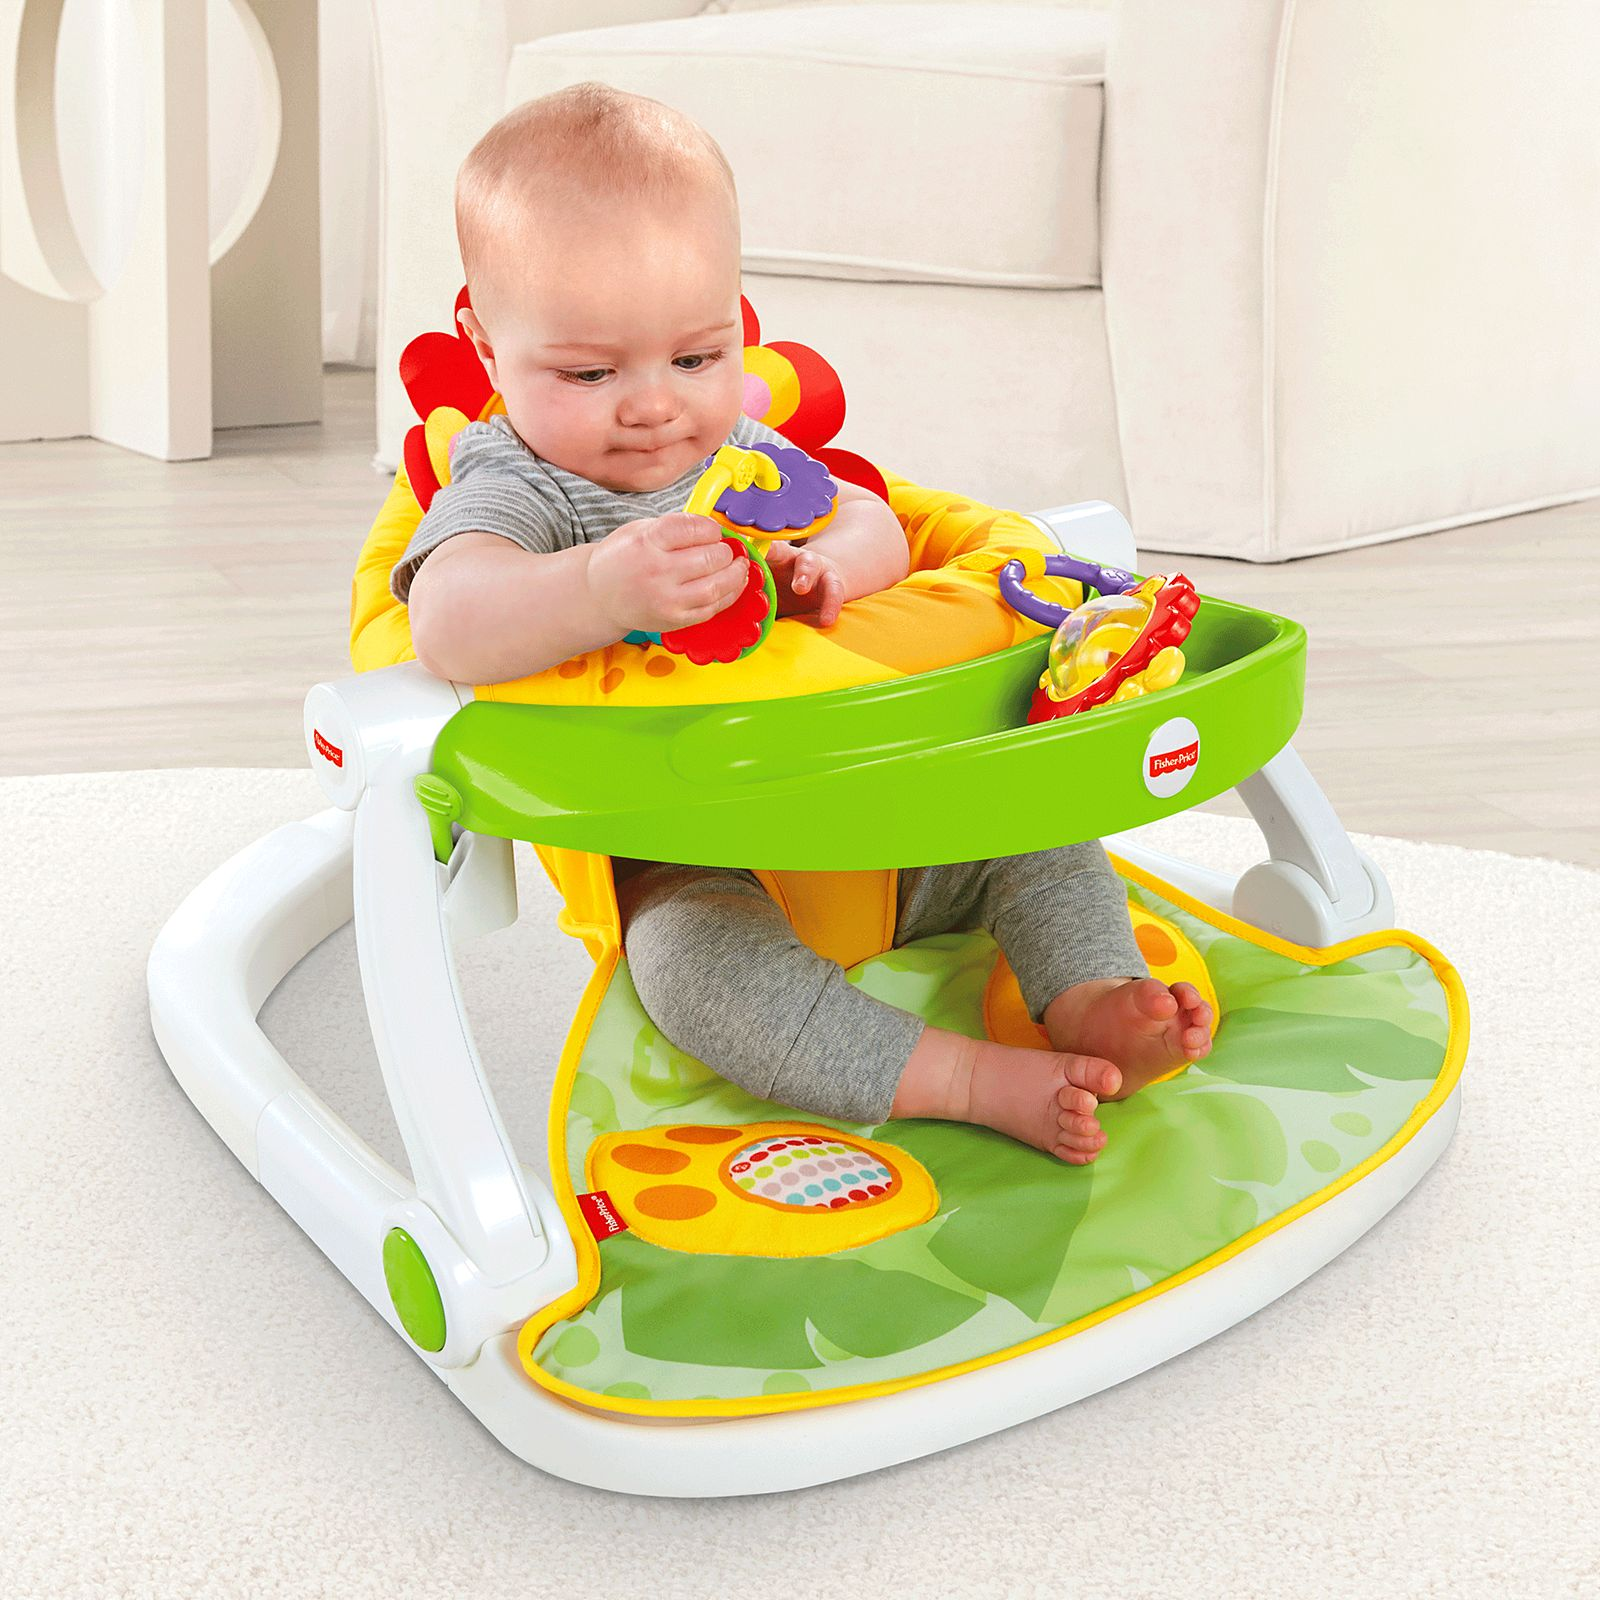 NEW ~ Fisher Price Sit Me Up Floor Seat Replacement Pad Cushion